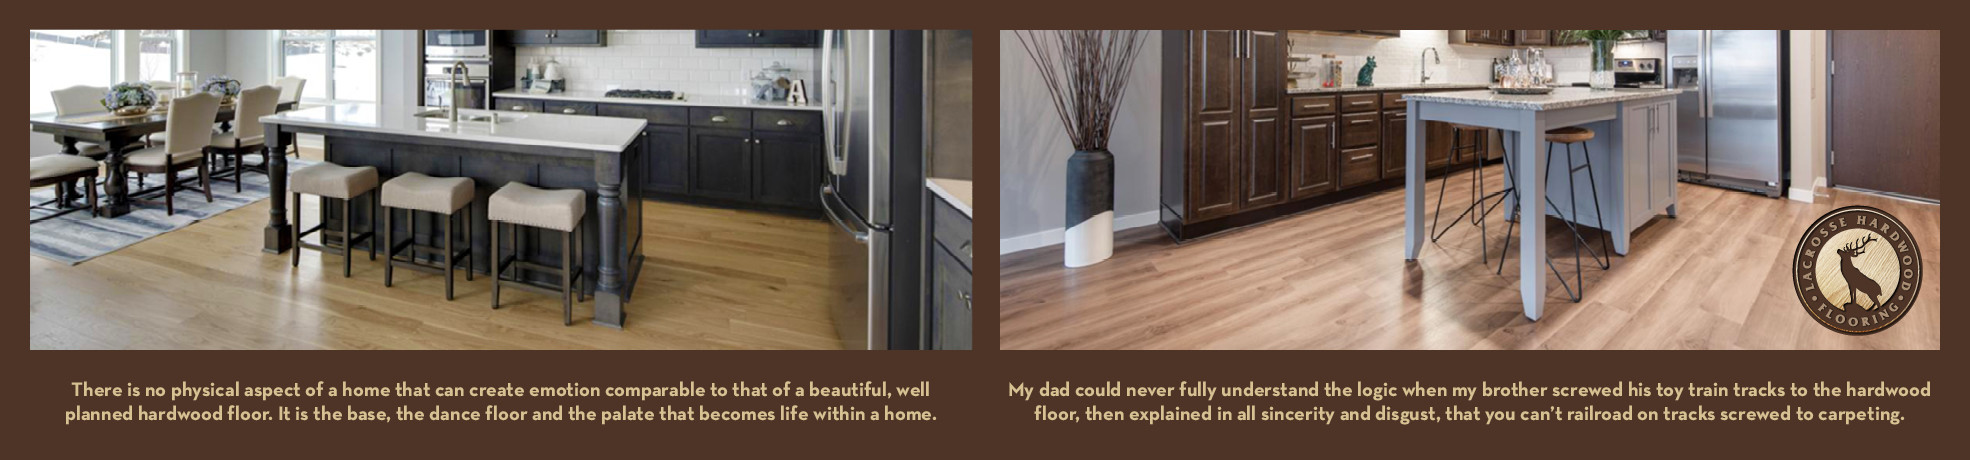 hardwood floor installer job description of lacrosse hardwood flooring walnut white oak red oak hickory intended for lhfsliderv24